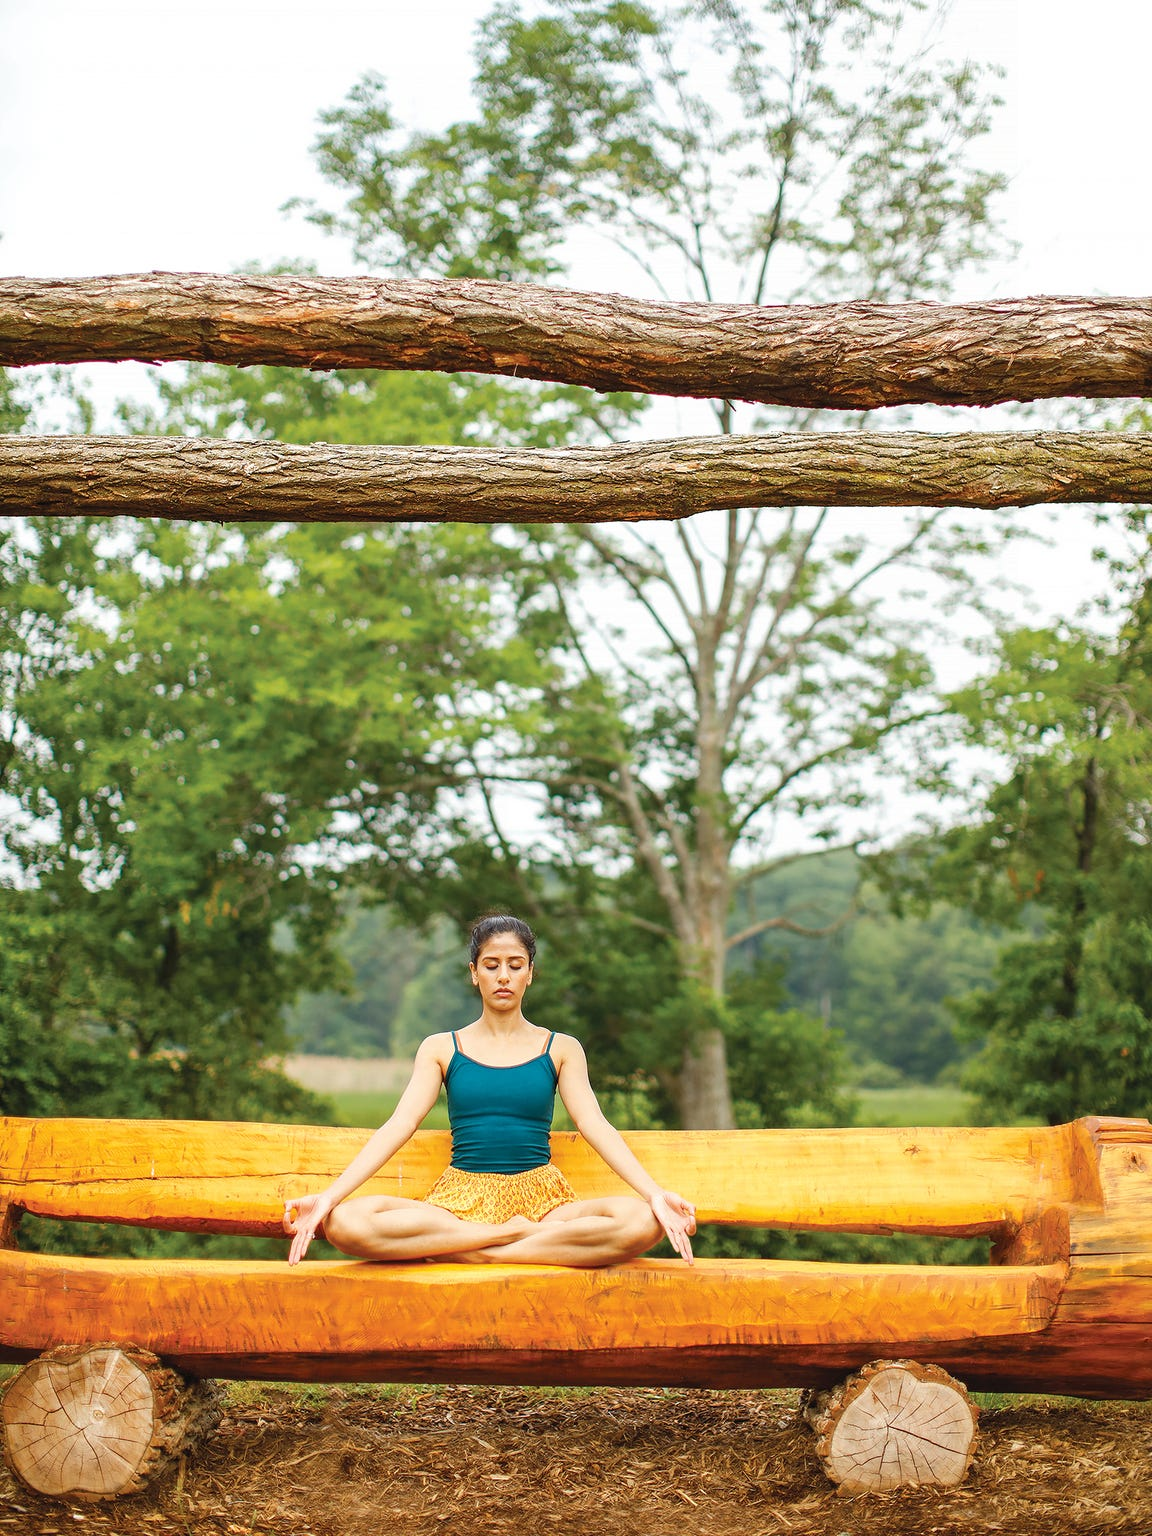 Amita Bhagat says true yoga goes far beyond the physical